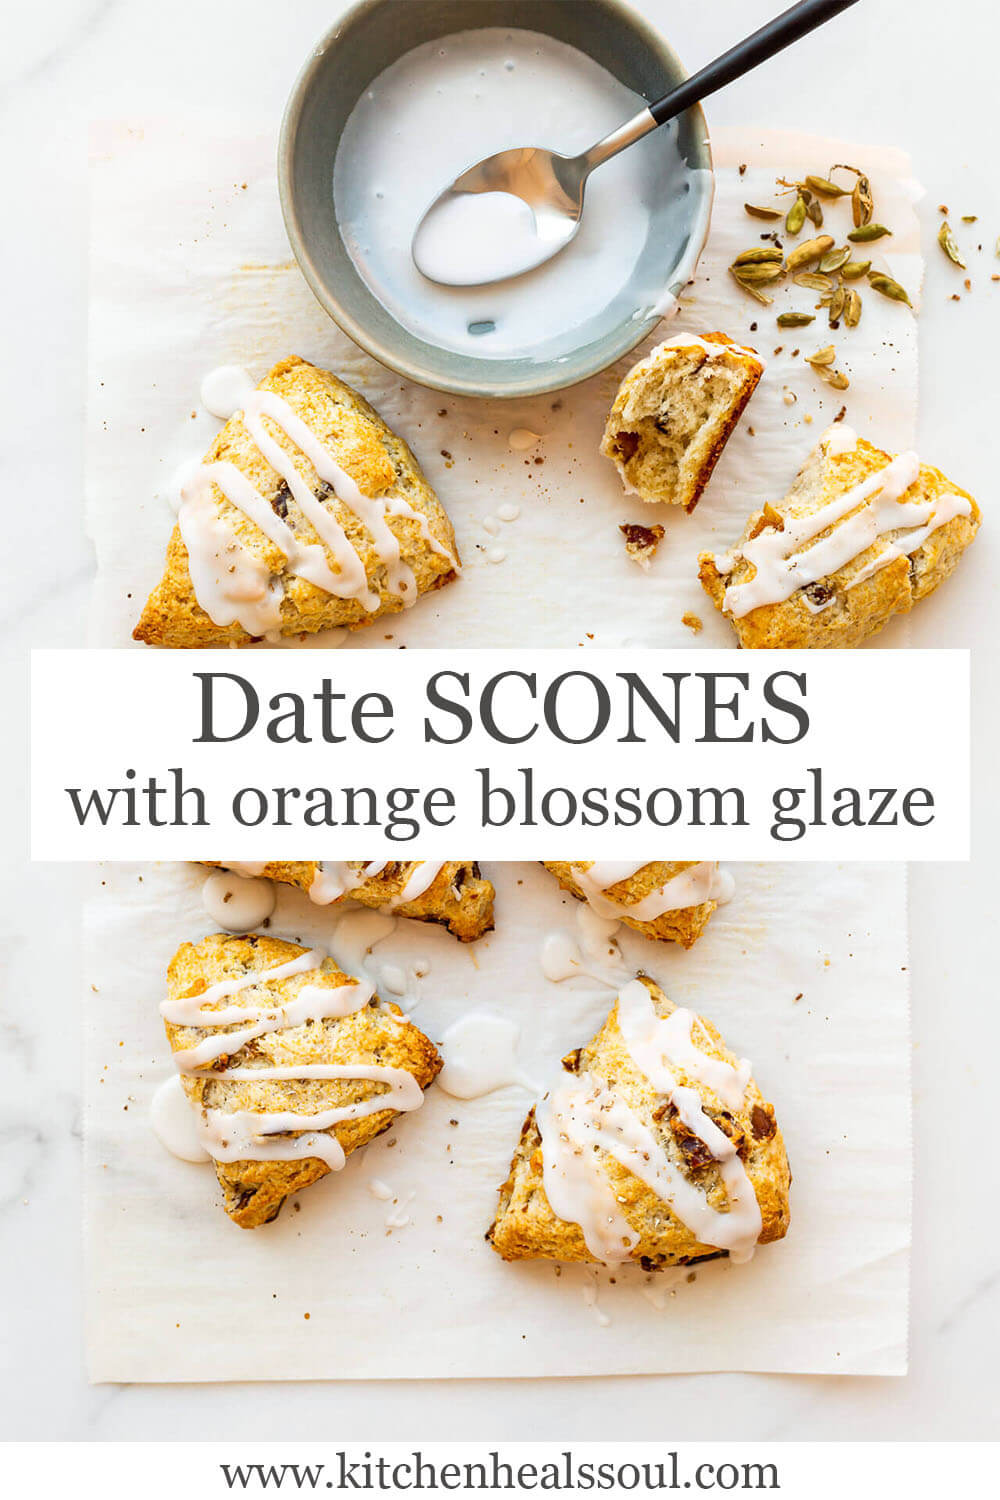 Cardamom date scones drizzled with orange blossom icing and topped with crushed cardamom seeds from green cardamom pods